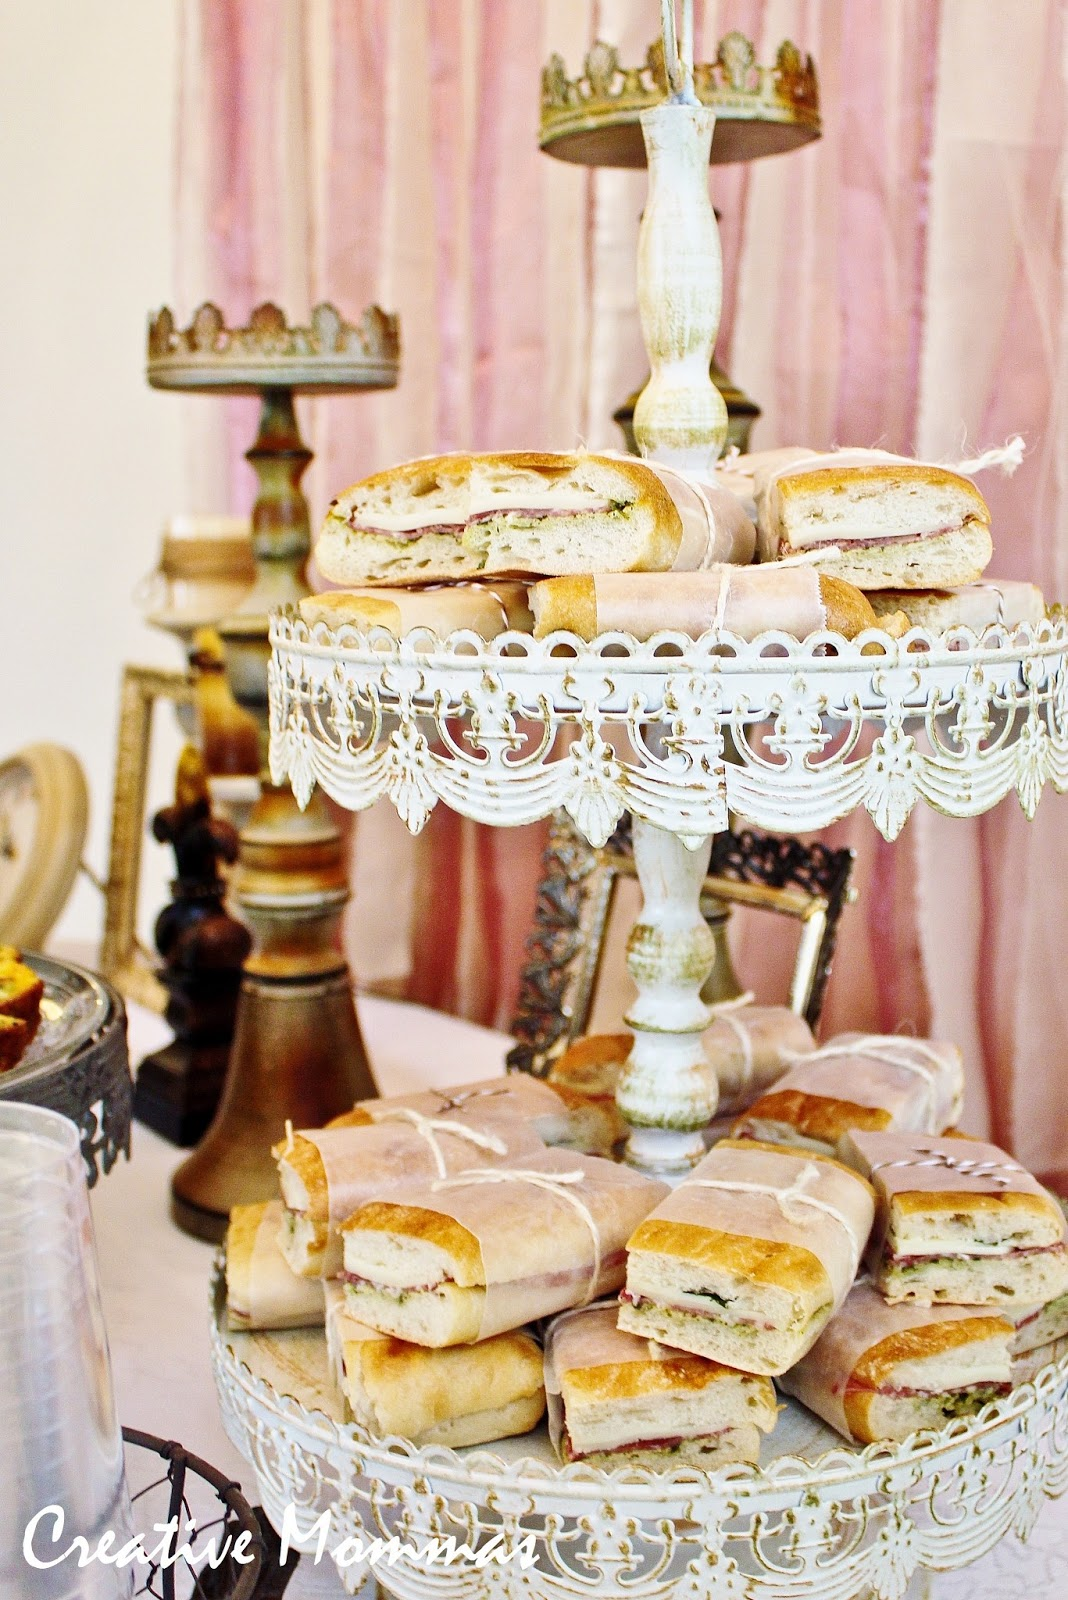 cool italian pressed sandwiches with cuisine shabby chic. Black Bedroom Furniture Sets. Home Design Ideas